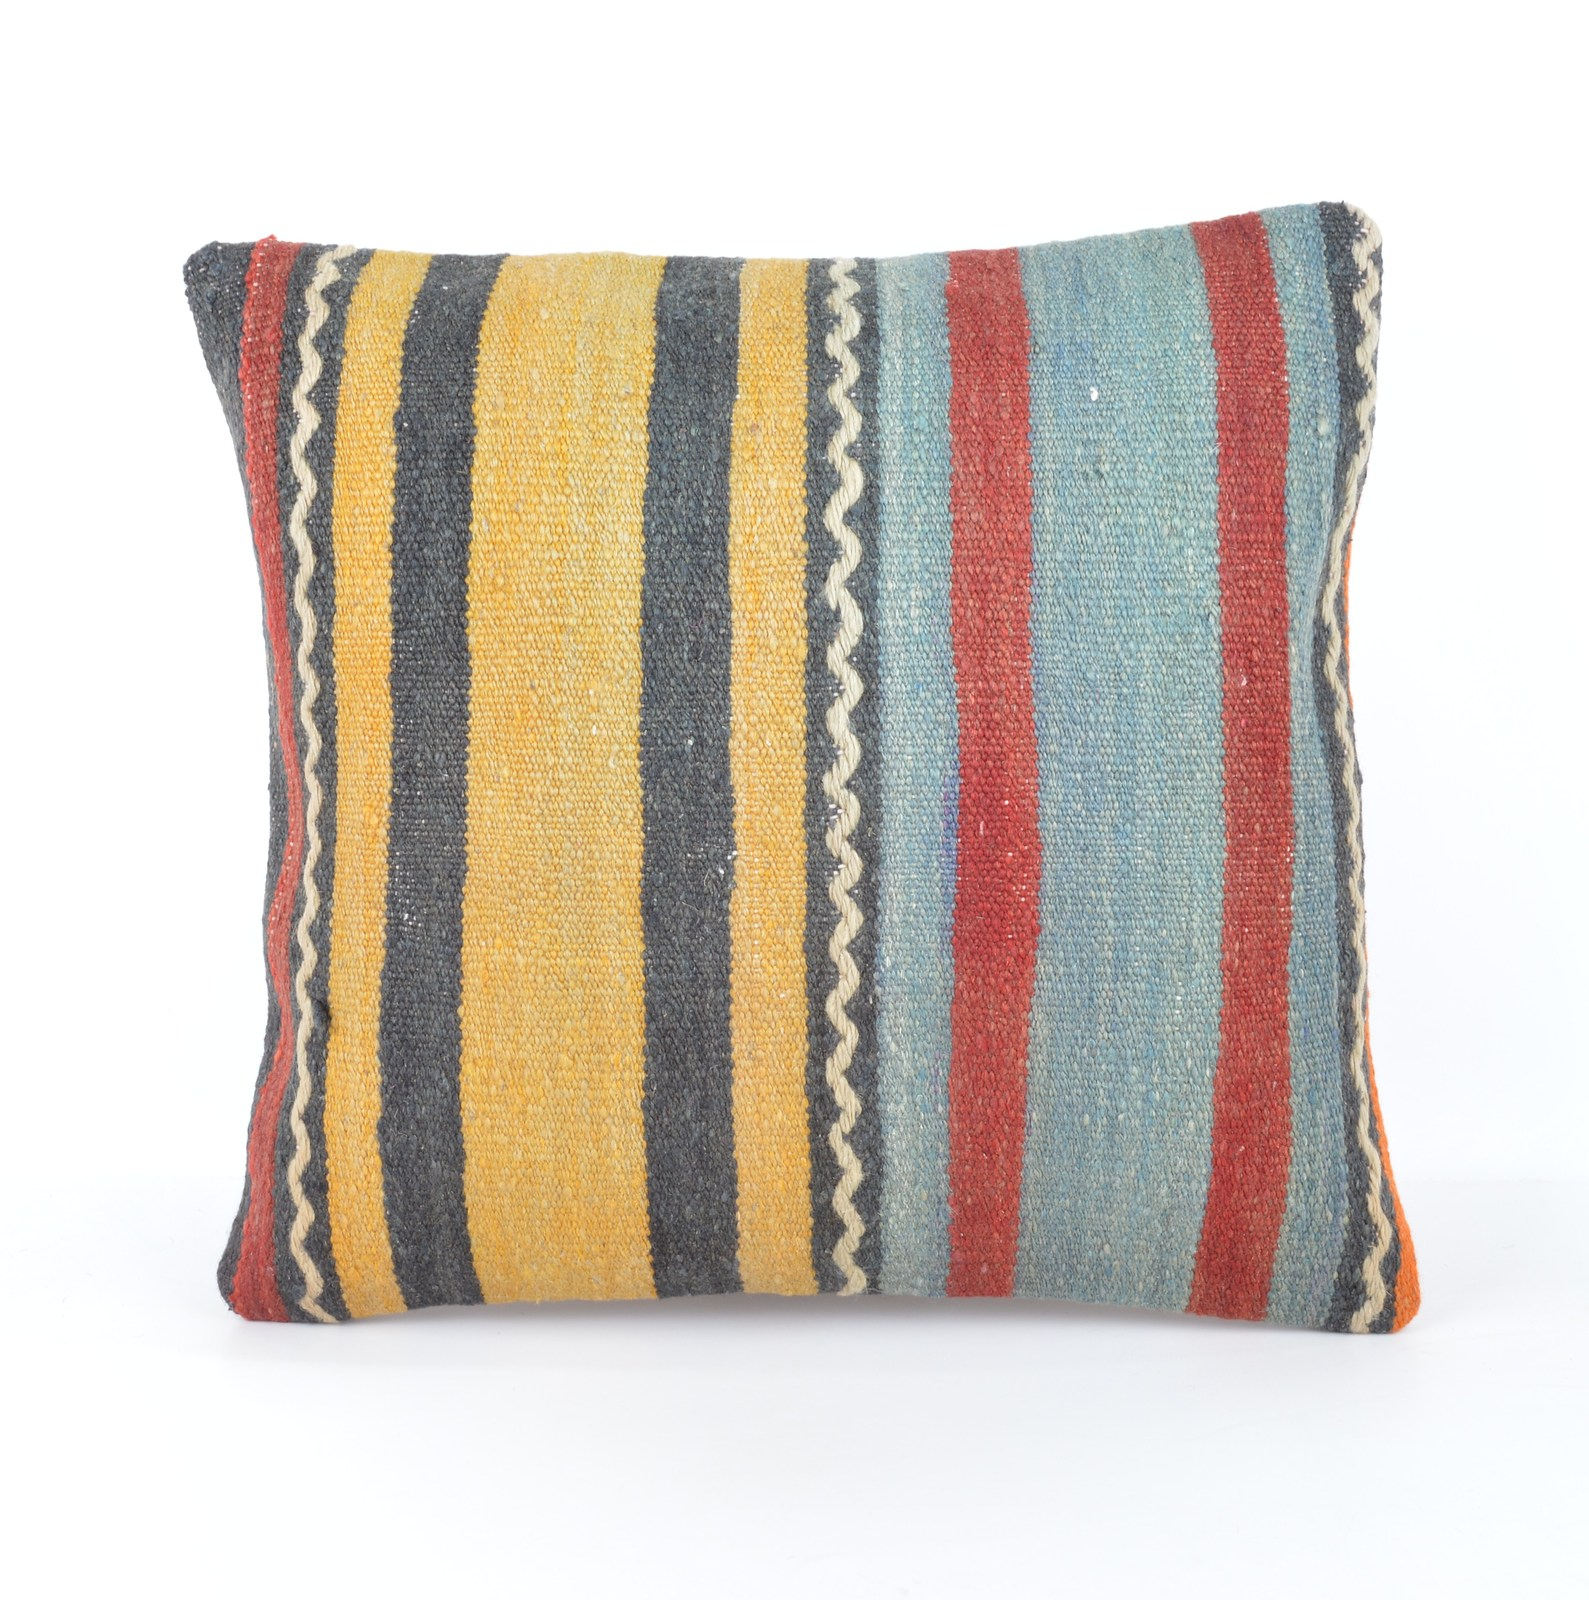 In Expensive Throw Pillows : discount kilim pillow cushion covers sale kilim throw pillows sale rug pillow - Pillows